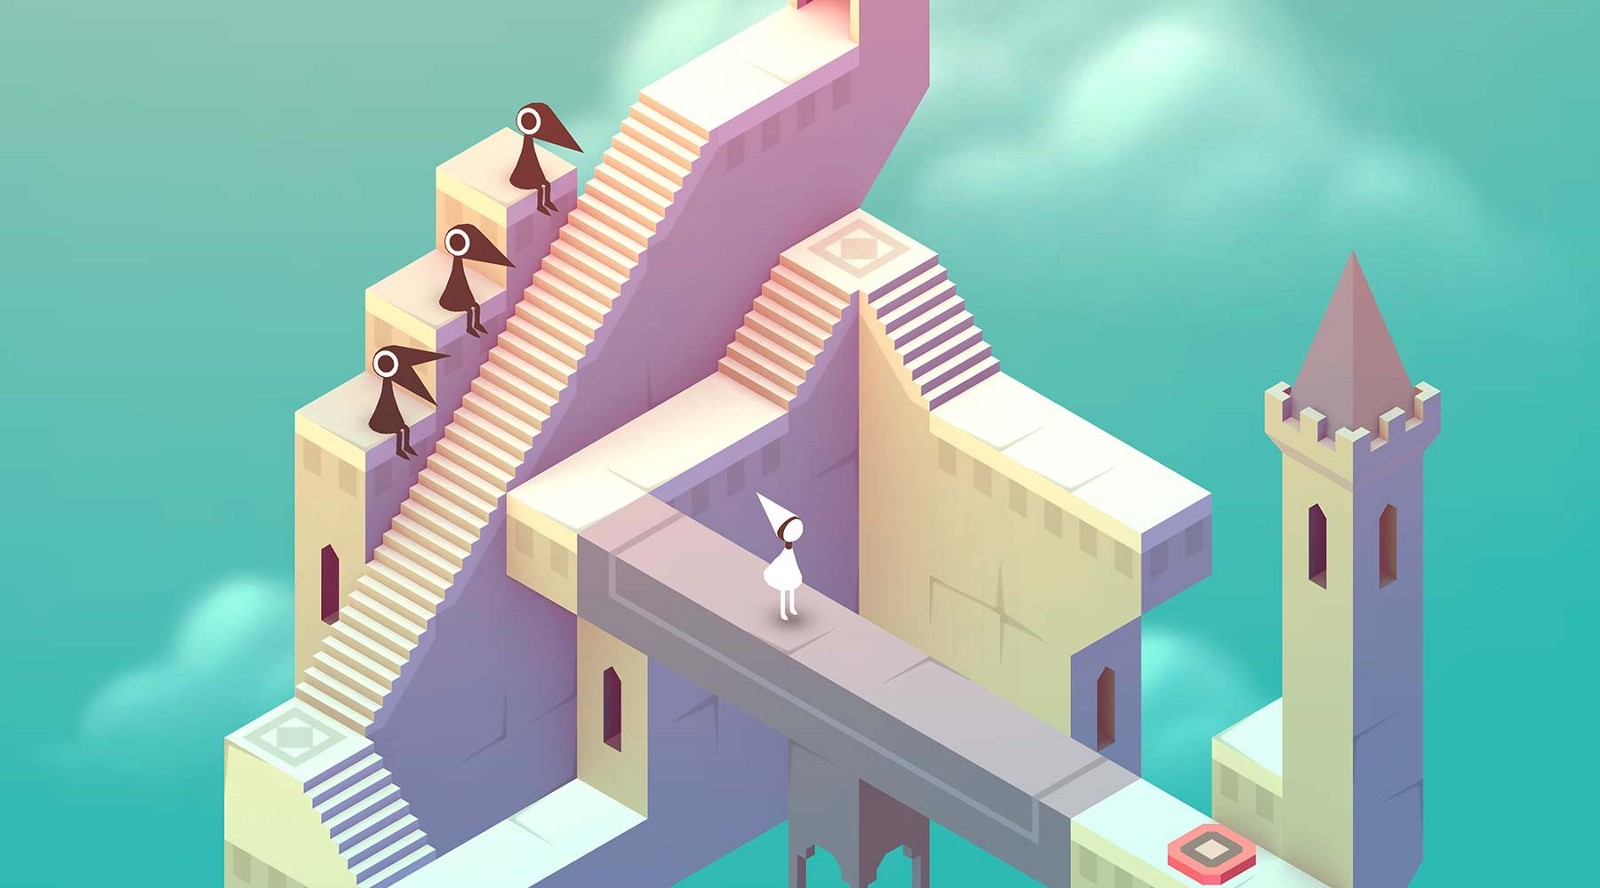 Monument Valley gameplay, featuring a graceful, almost-genderless princess, Ustwo (2014)